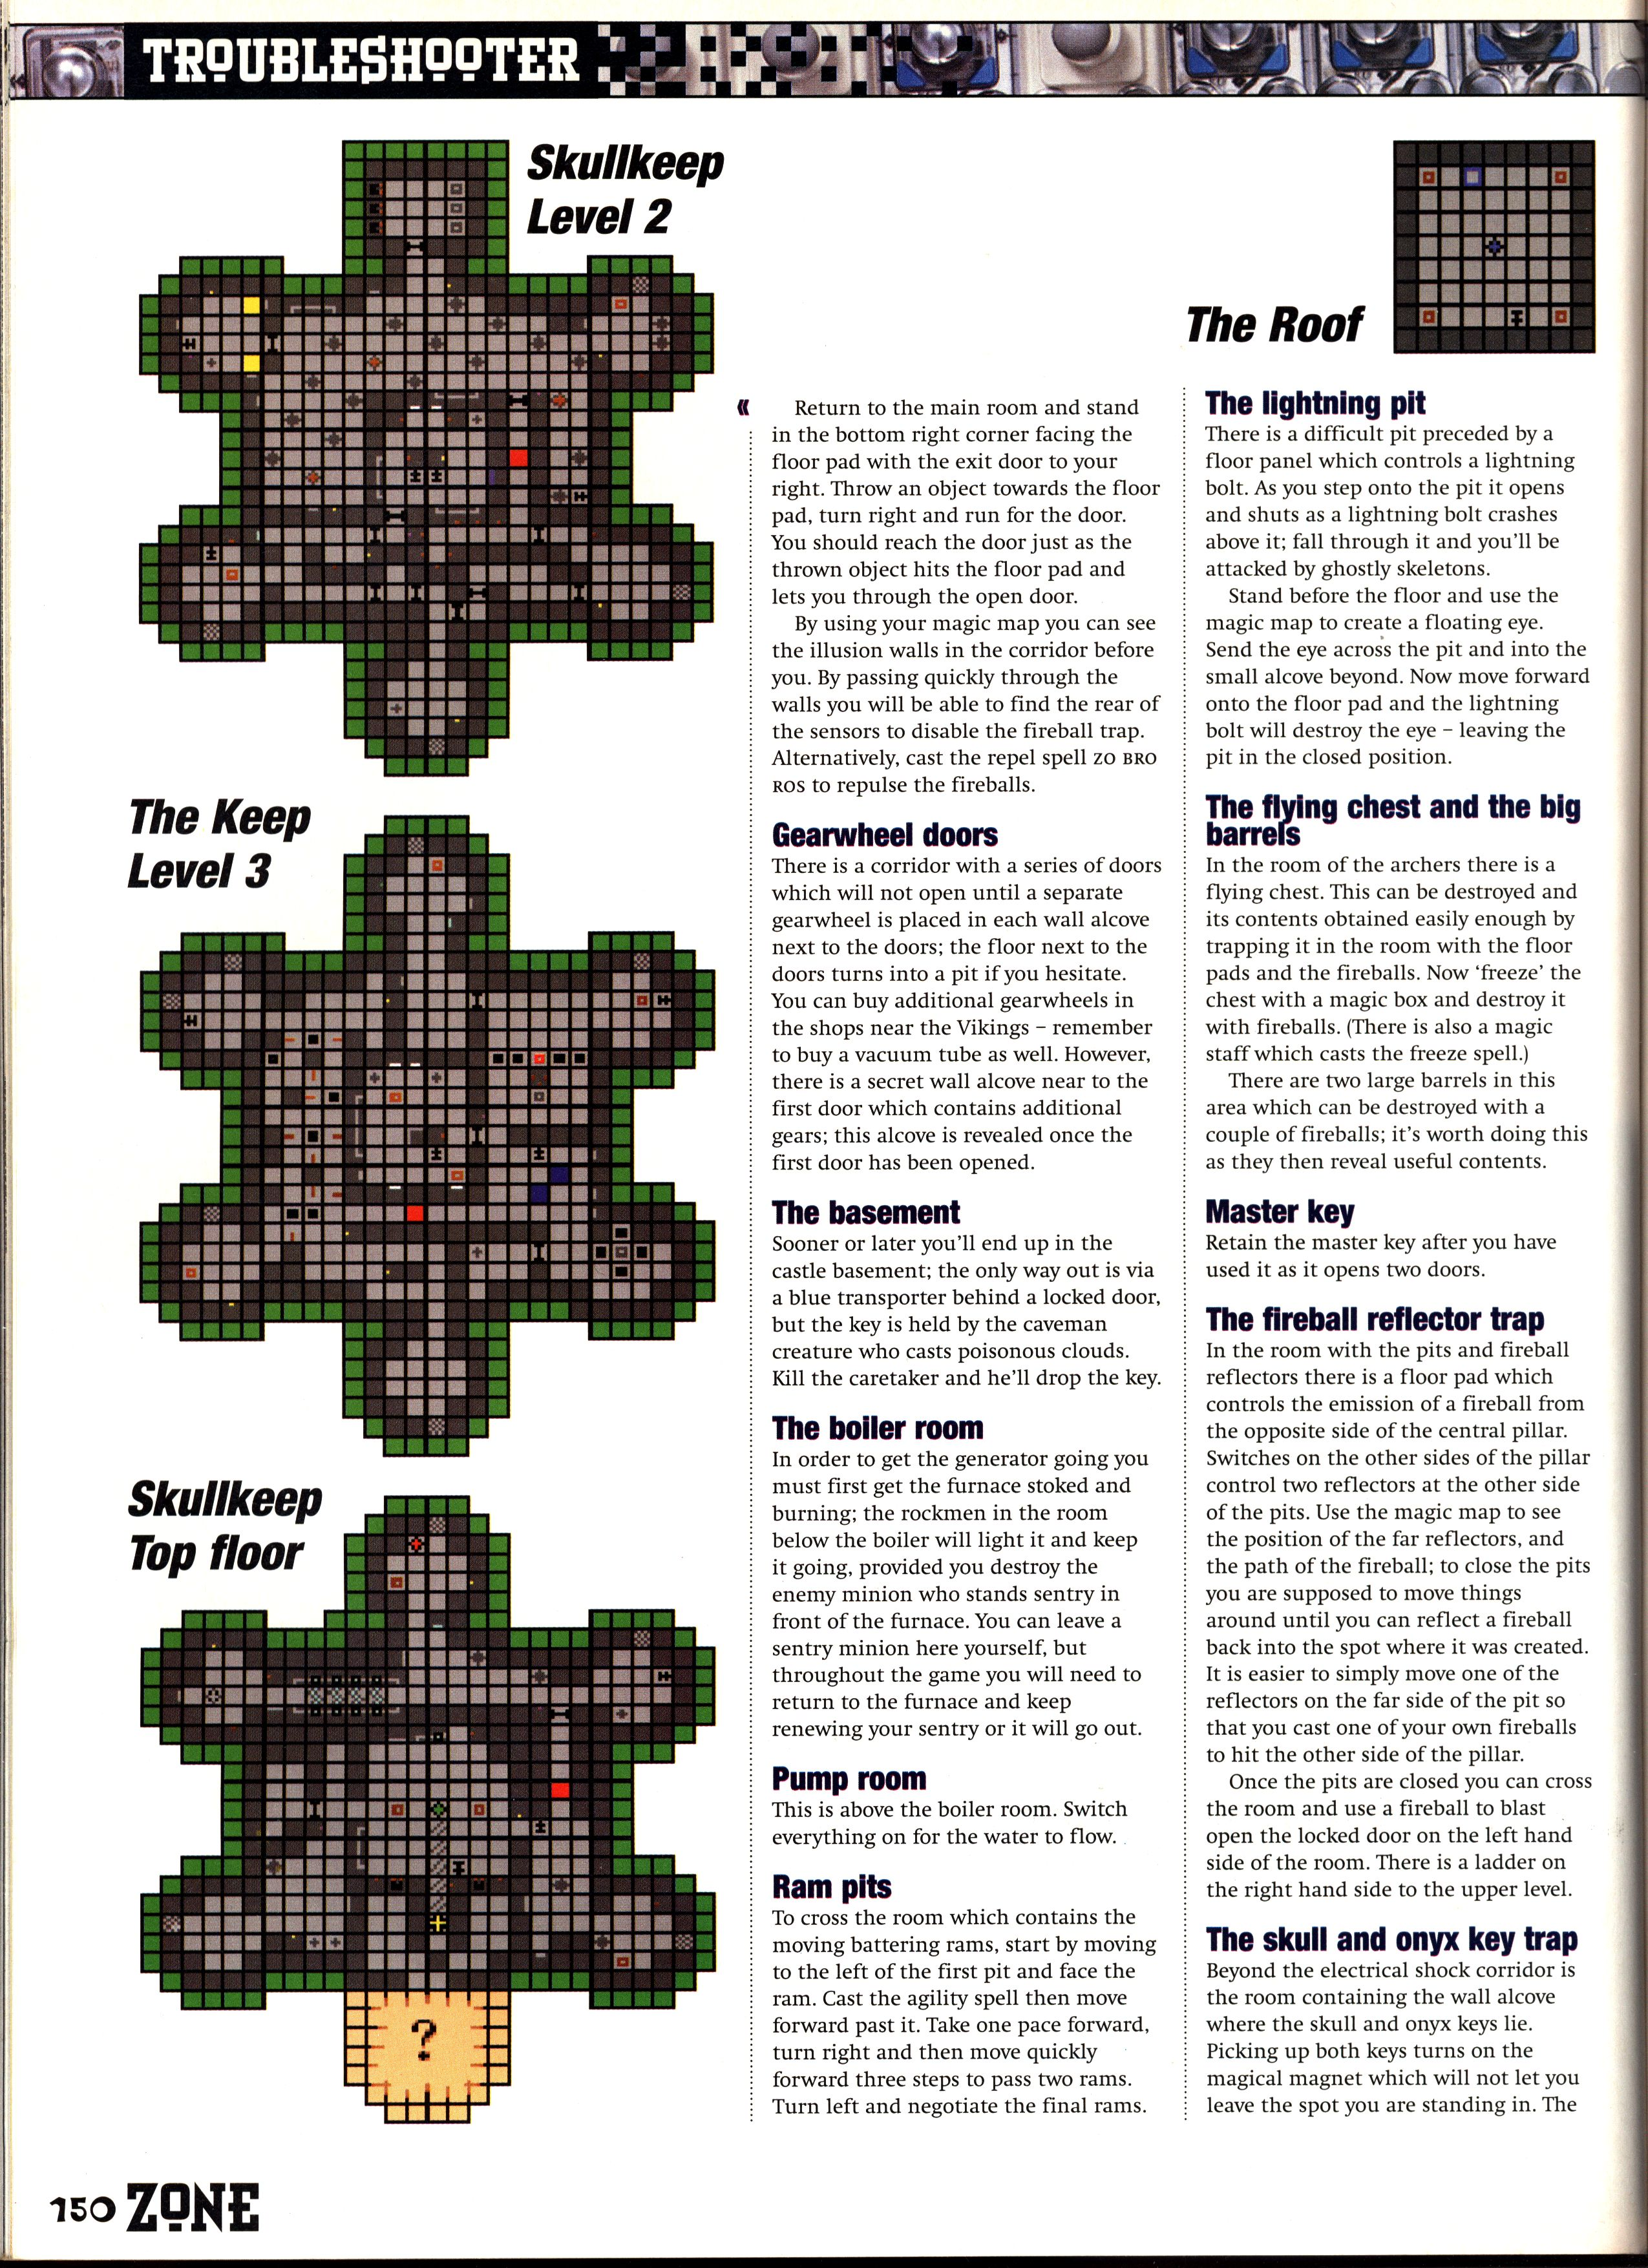 Dungeon Master II Guide published in British magazine 'PC Zone', Issue #33 December 1995, Page 150